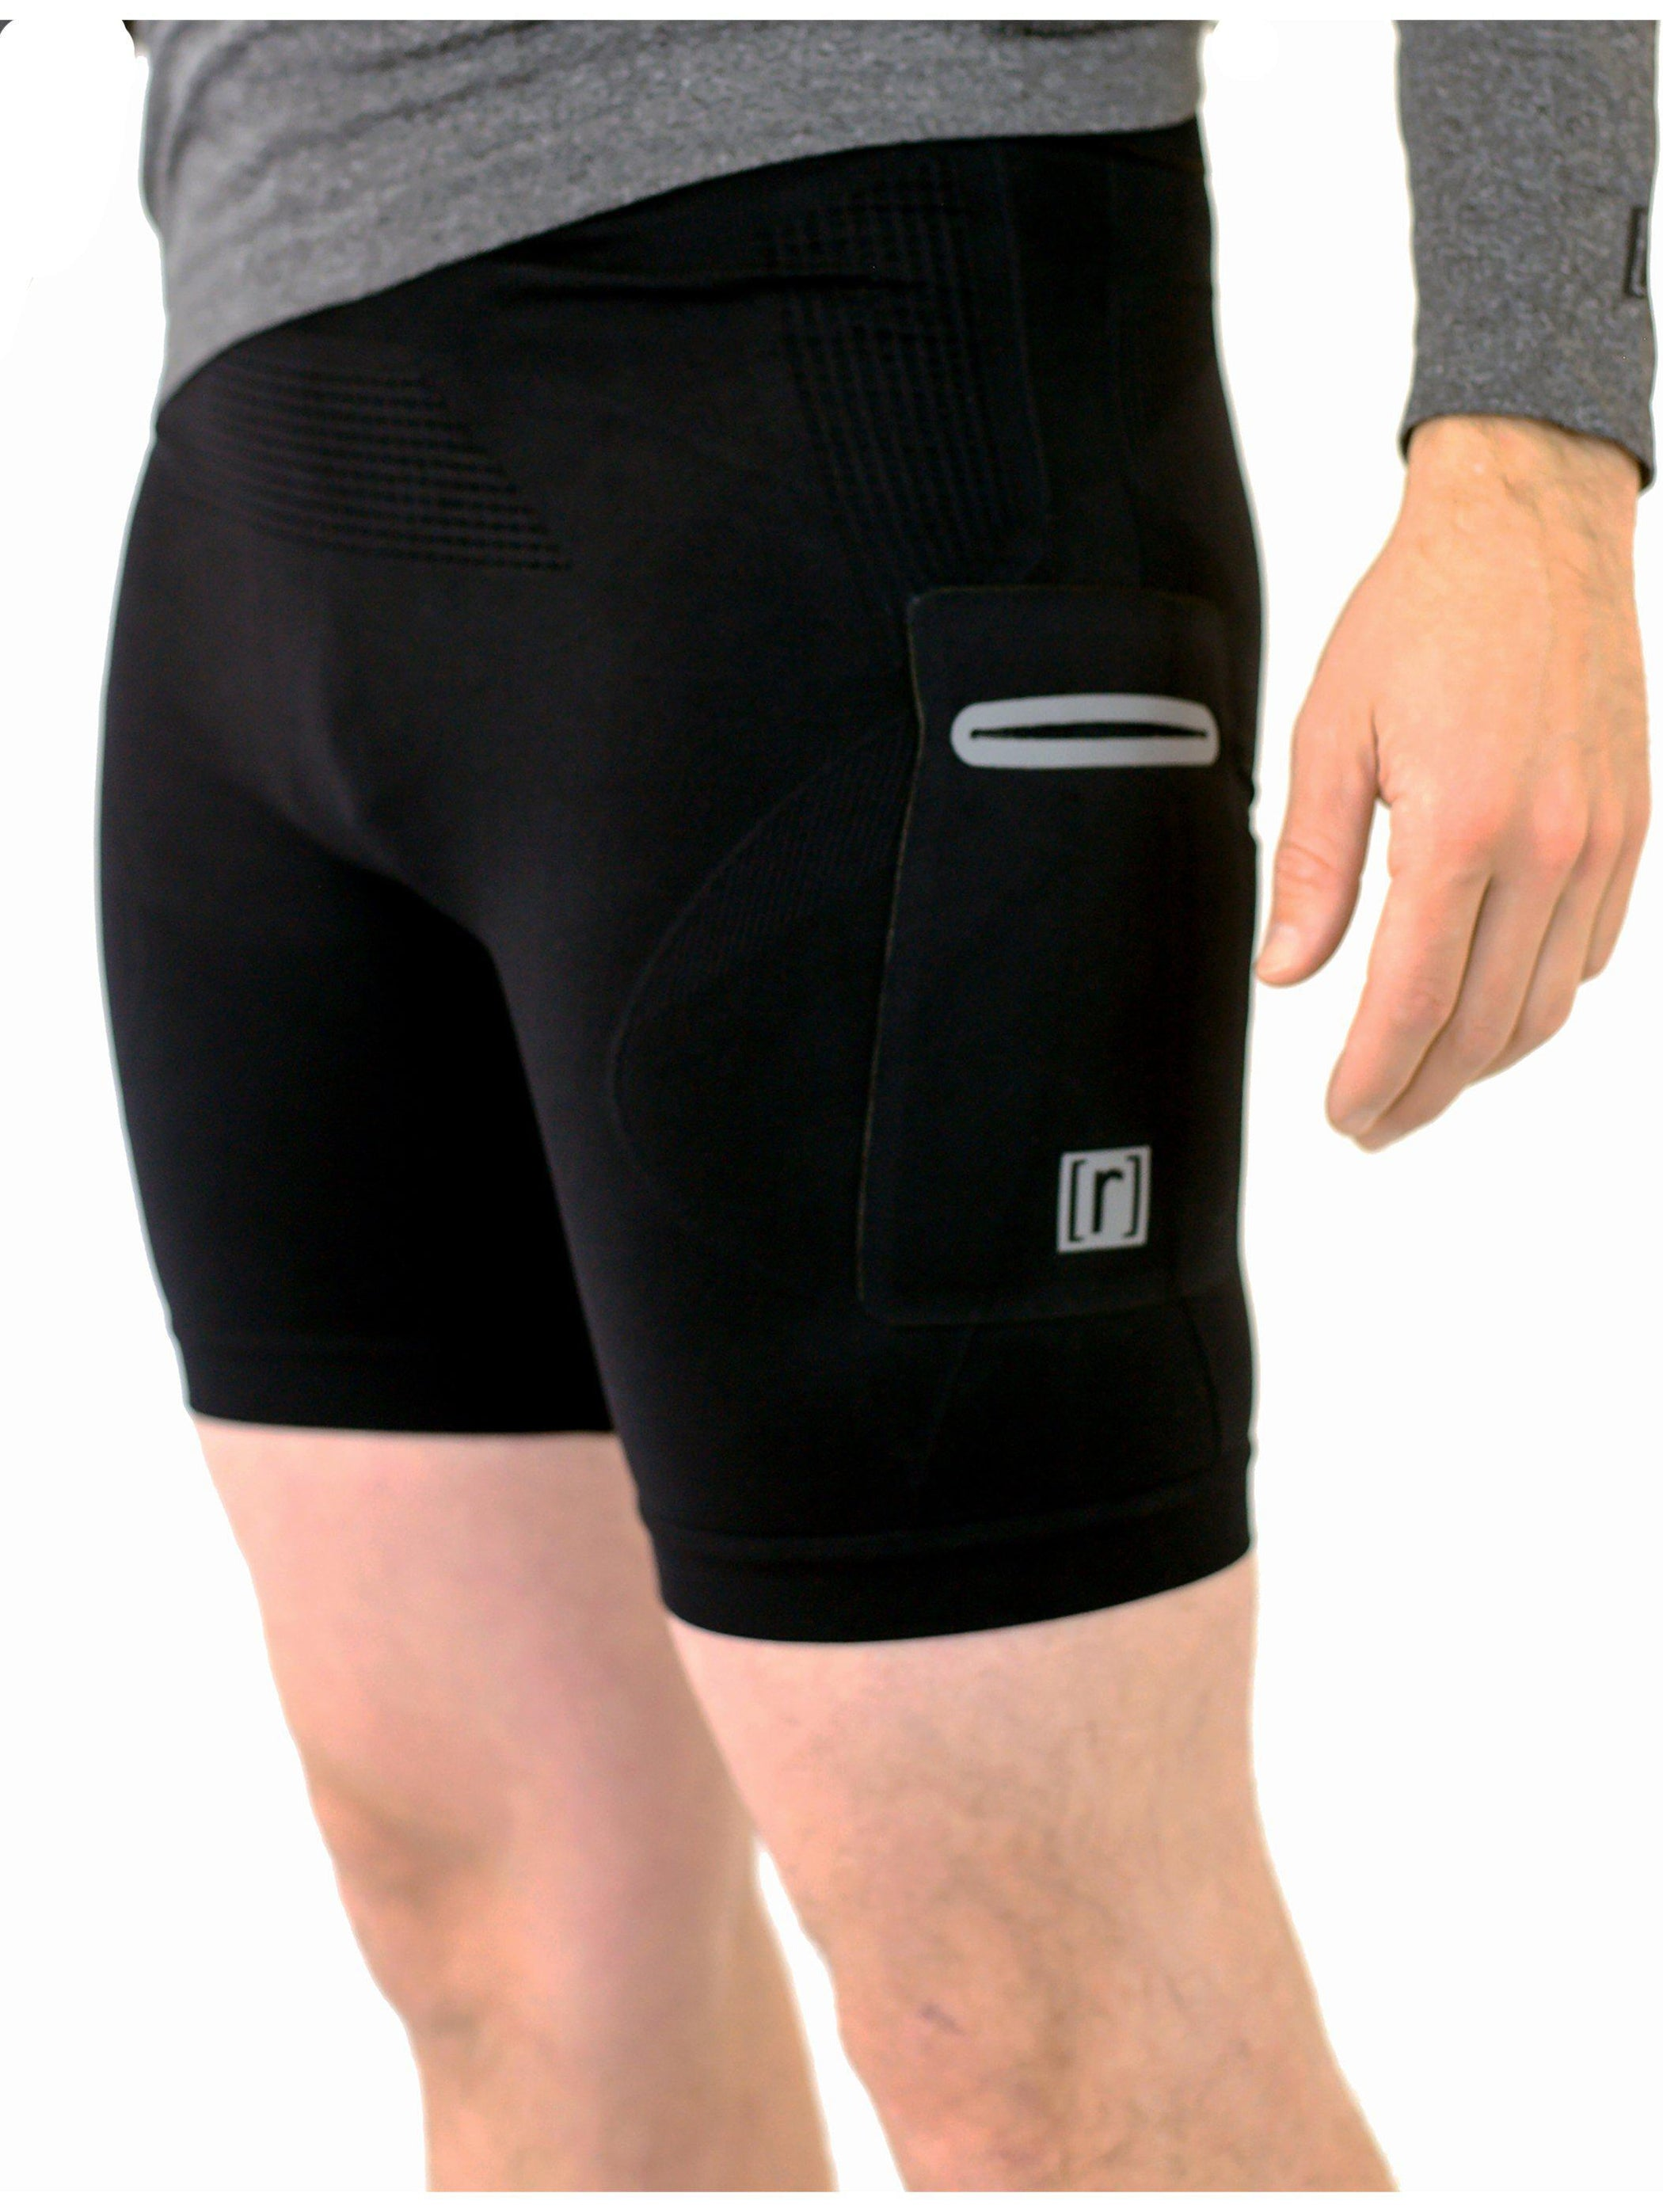 Black compression shorts with patented fully seamless front, pockets and 6 inch inseam. Side view.